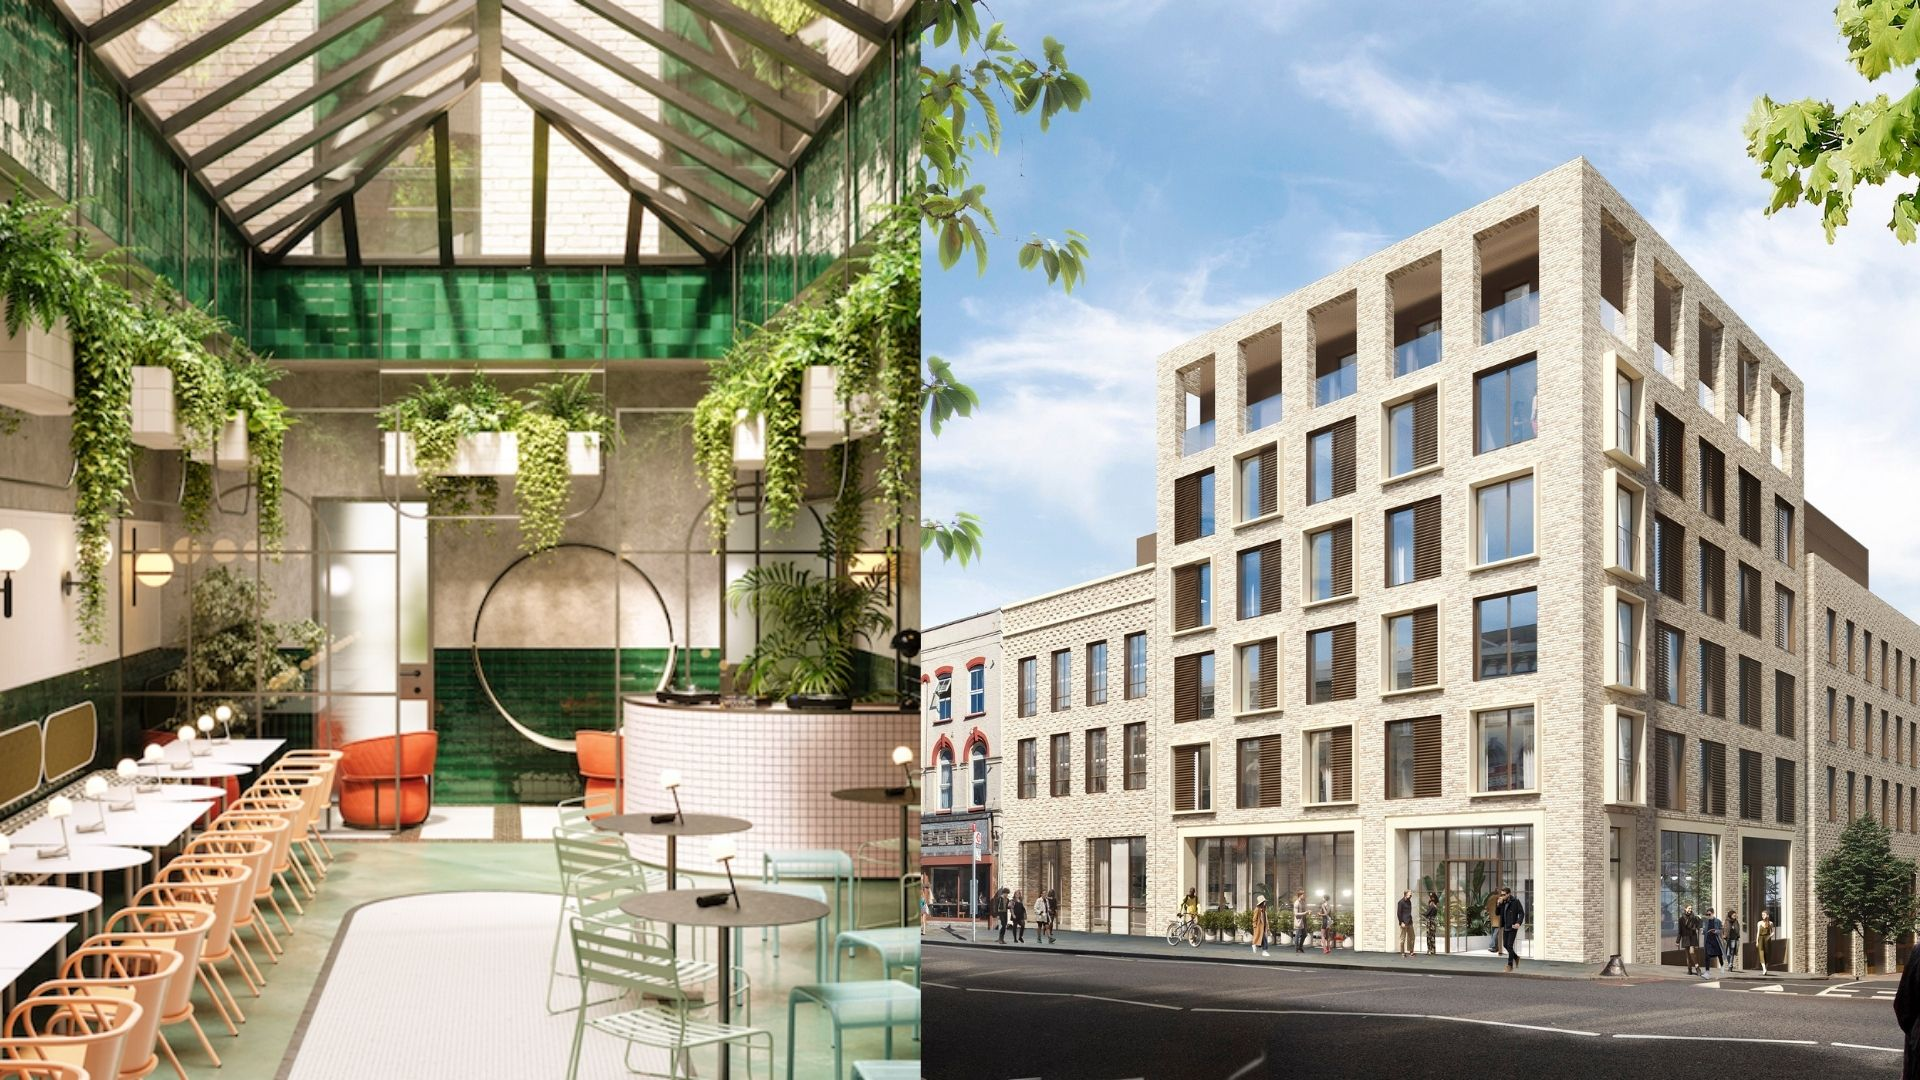 Kingsland Locke in Dalston will have 124 apartments, co-working space, on-site micro-brewery and gin distillery